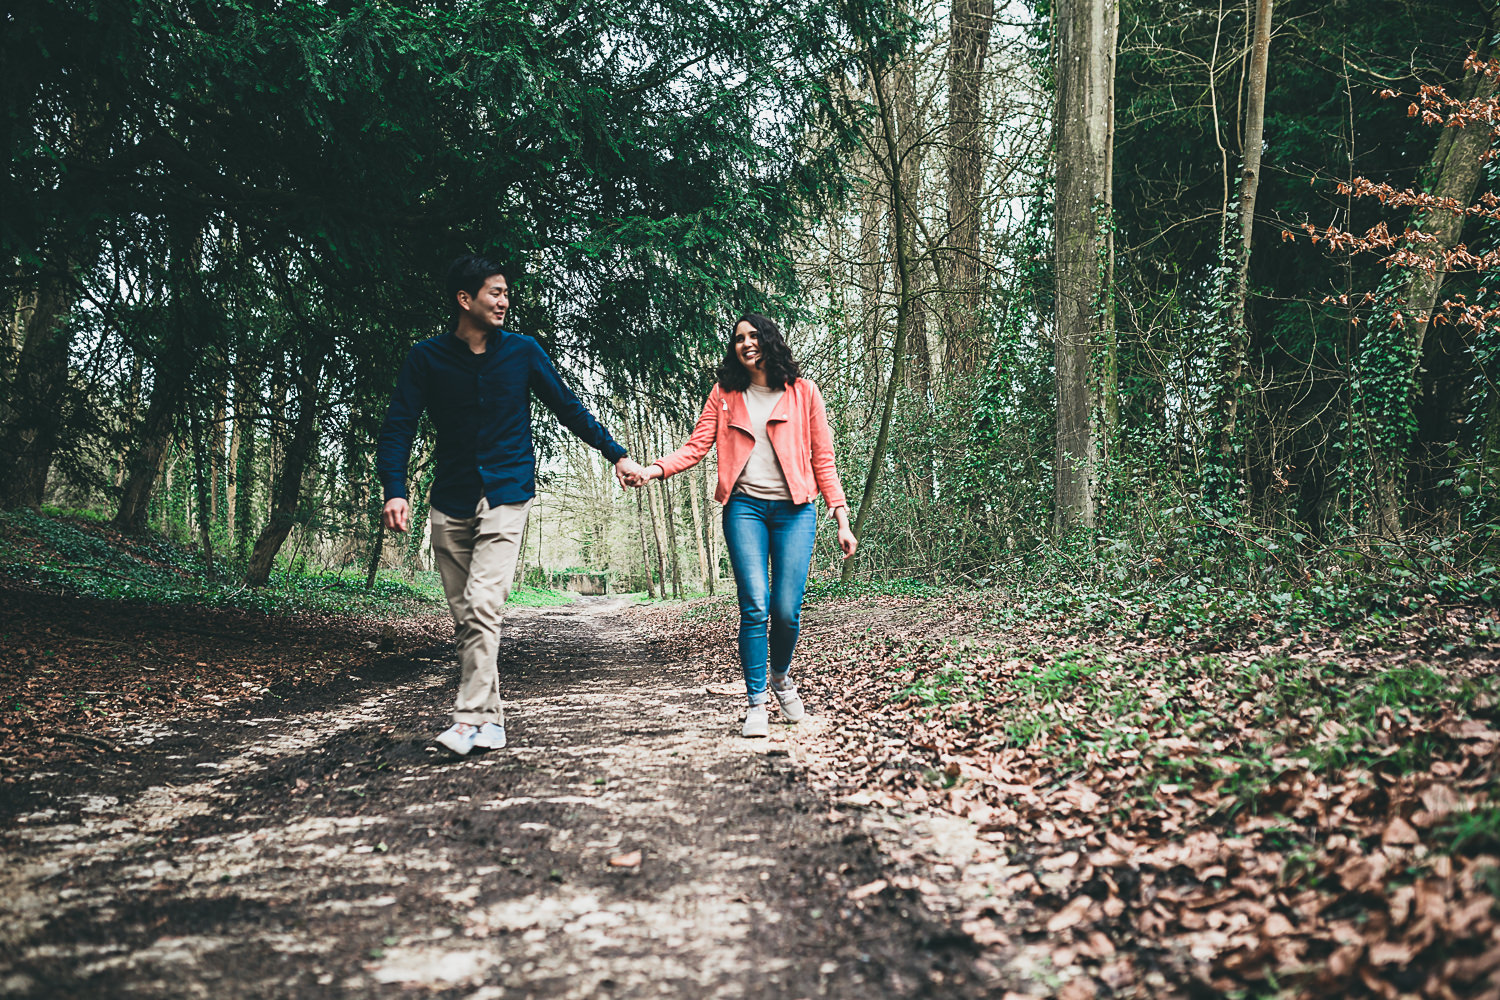 S&K | Cirencester Engagement Photography-10.JPG